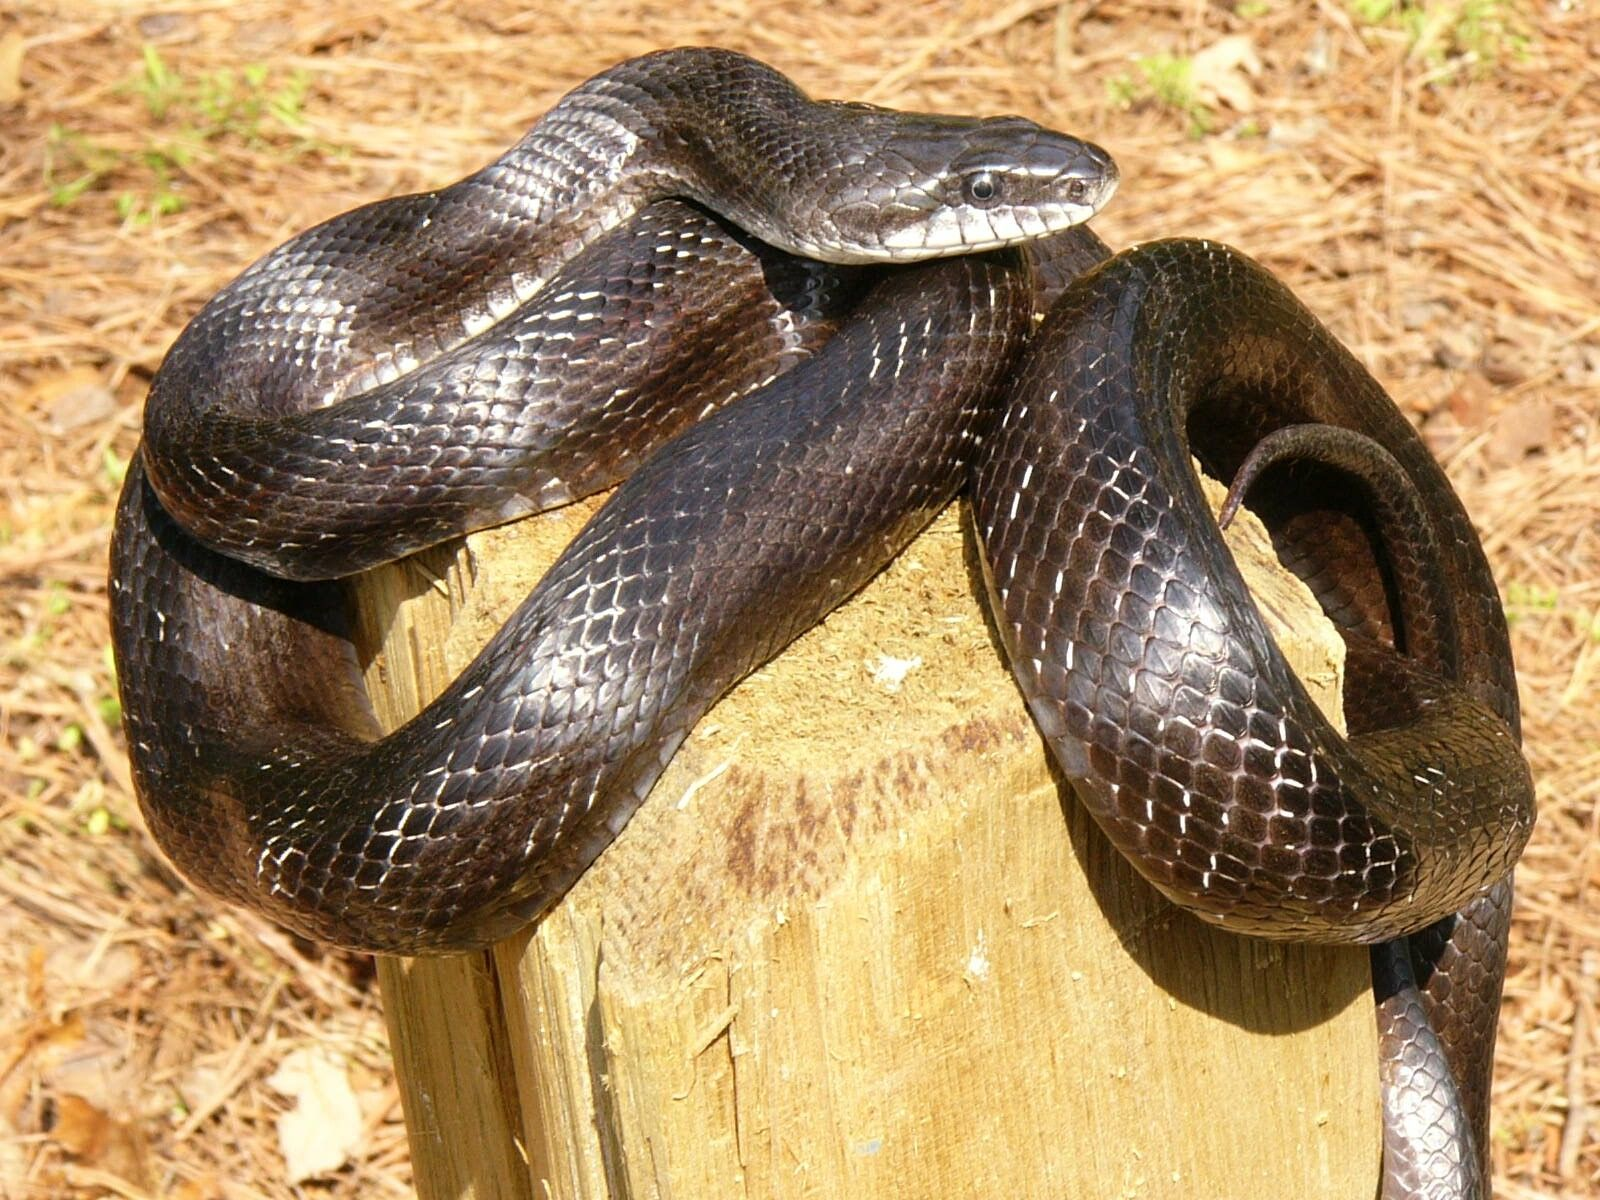 Known for its climbing ability, the harmless black rat snake is notorious for accidentally crawling inside people's home. (Photo/John Jensen, Georgia DNR)